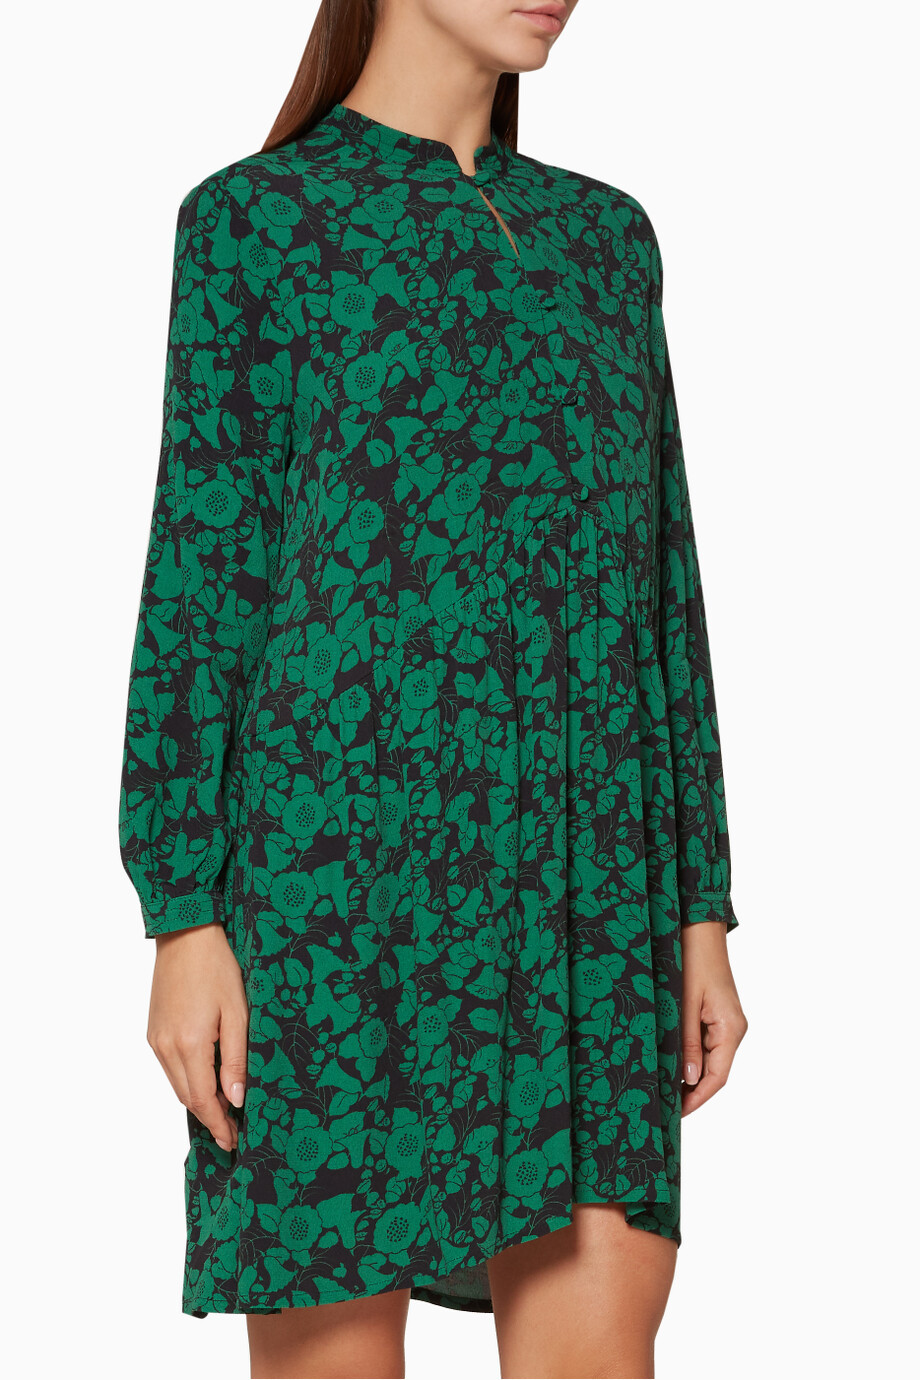 Shop Whistles Green Green Deco Floral Print Shirt Dress For Women